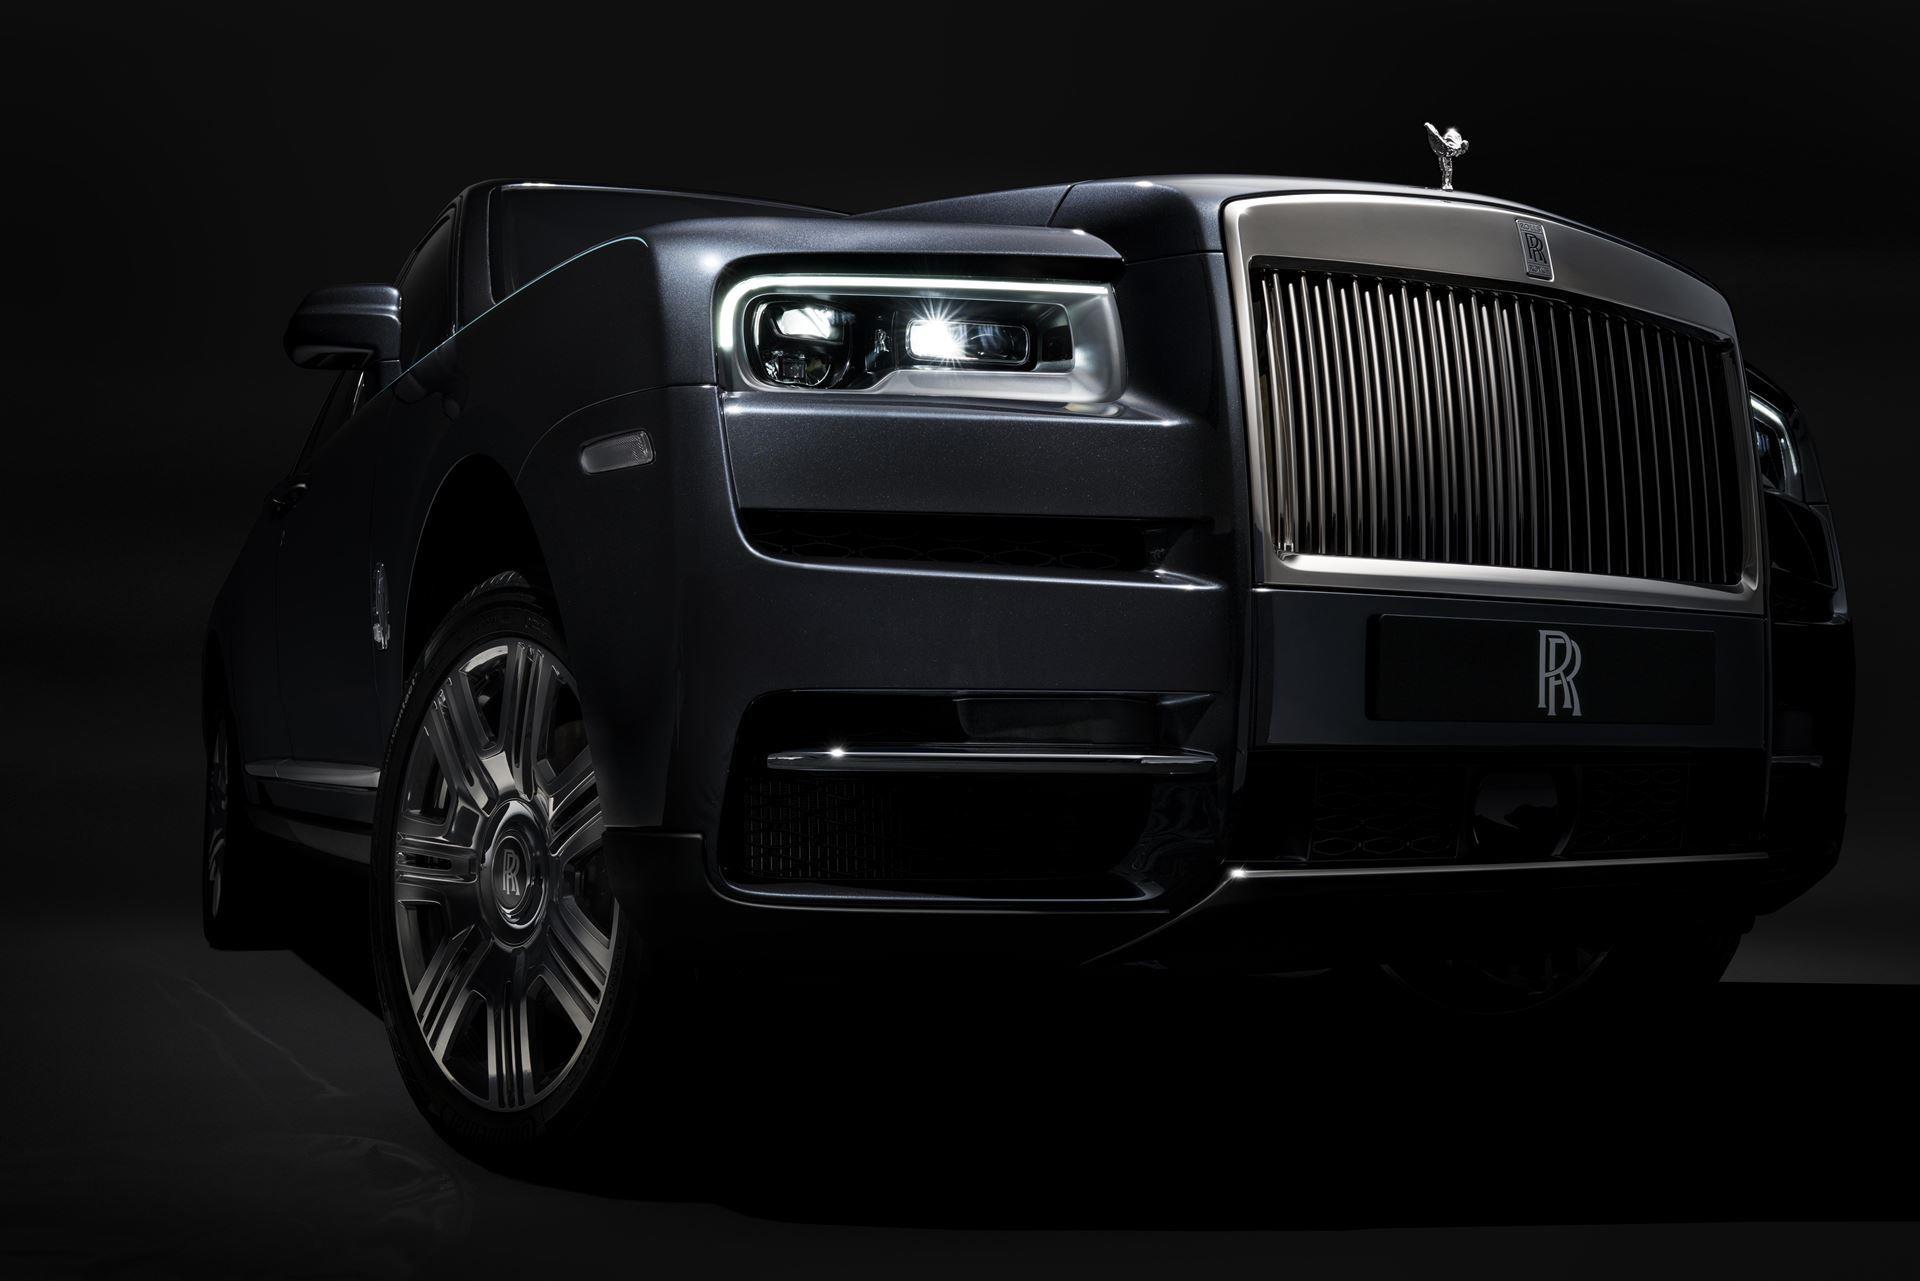 2018 Rolls Royce Cullinan Wallpapers Hd Drivespark